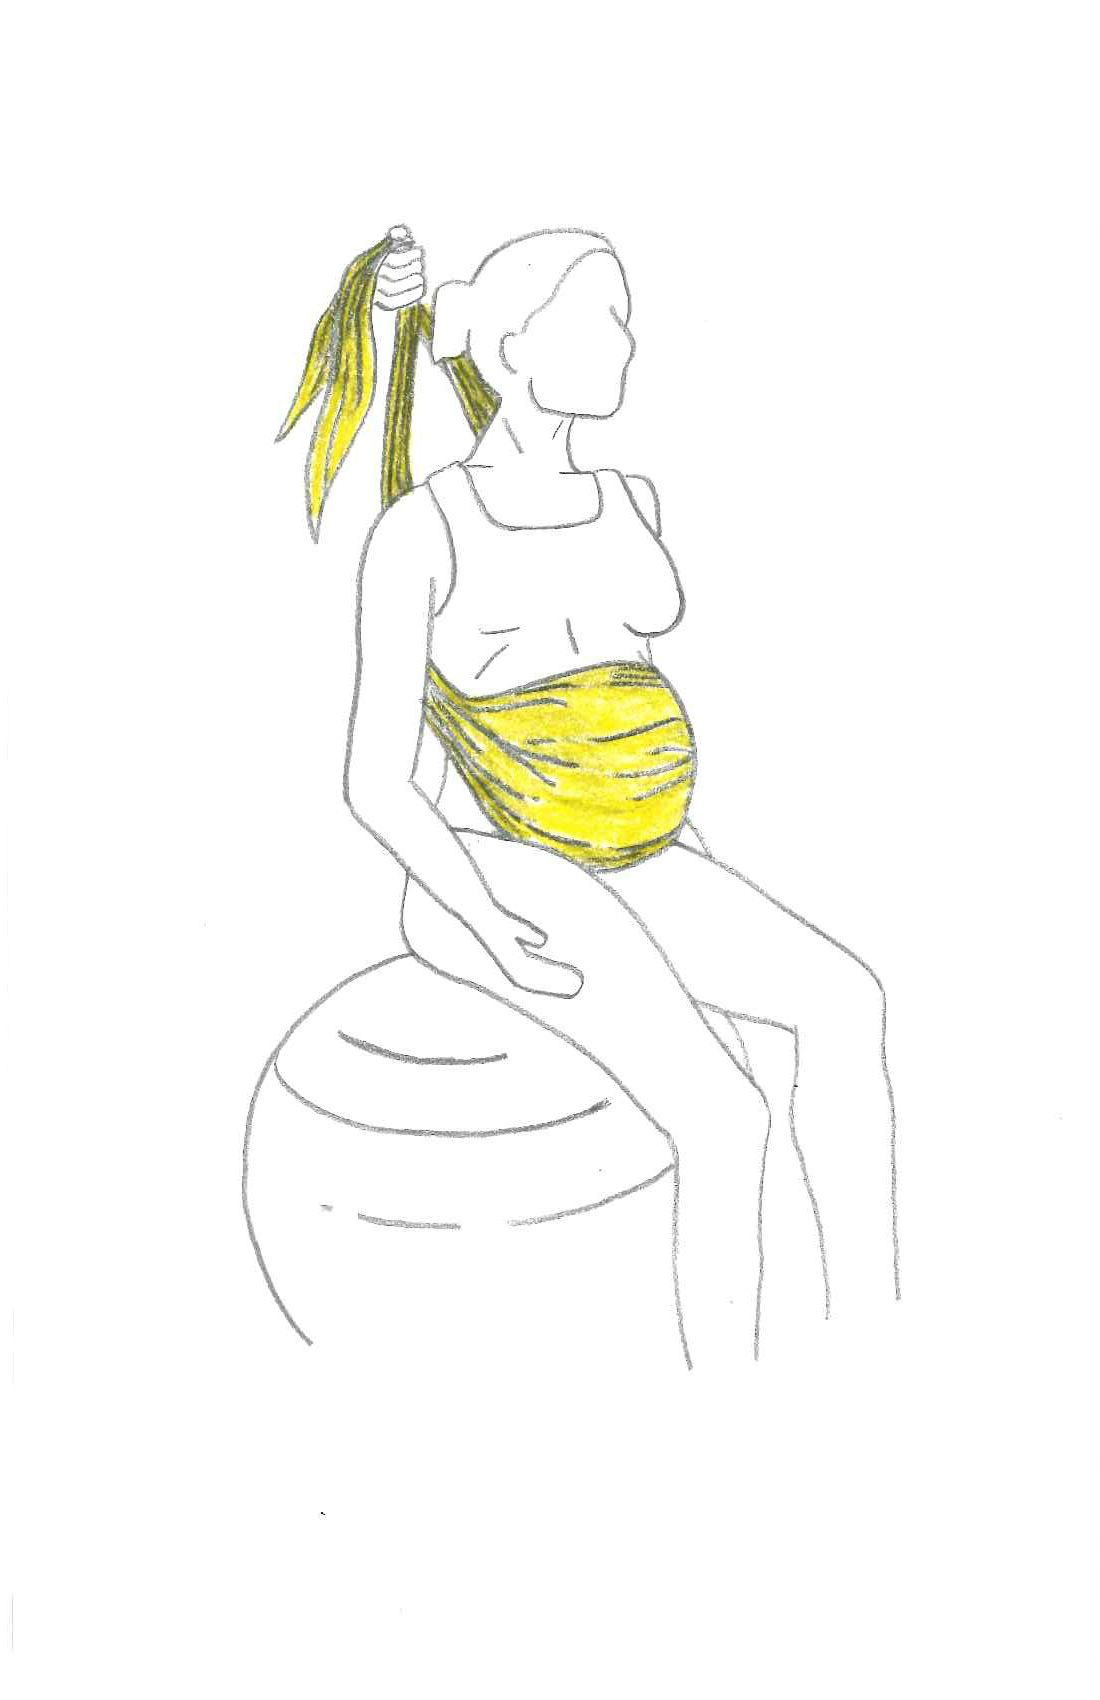 Lohee rebozo perfect birth tool for doulas and mothers doula lohee rebozo perfect birth tool for doulas and mothers aiddatafo Image collections